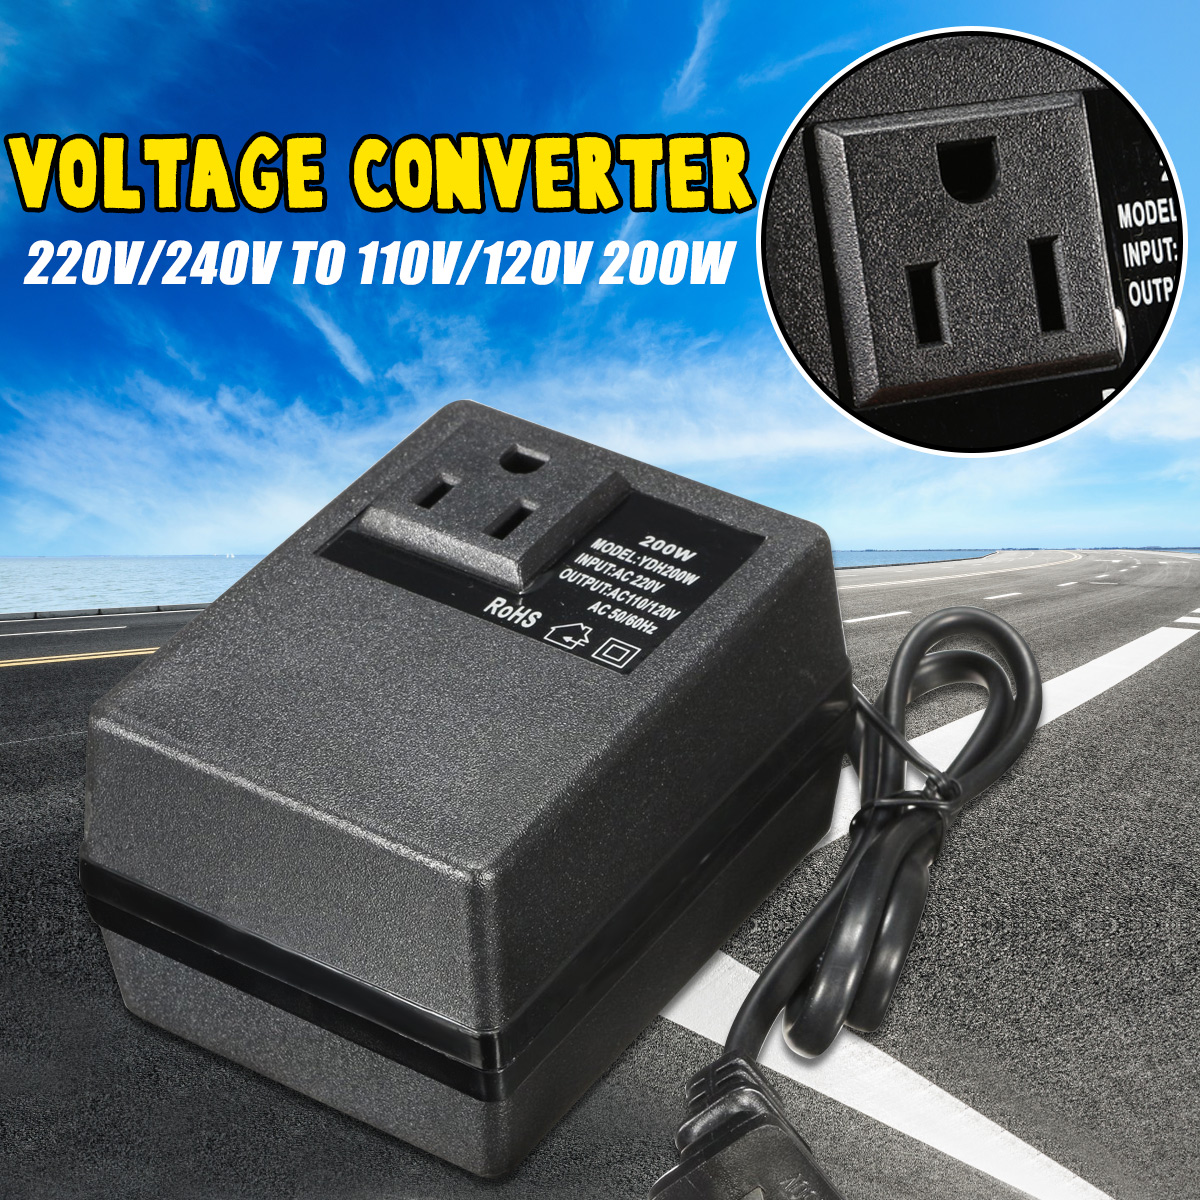 <font><b>220V</b></font> 240V <font><b>to</b></font> <font><b>110V</b></font> 120V <font><b>200W</b></font> Electronic International Travel Power Converter Voltage Converter Power Adapter image